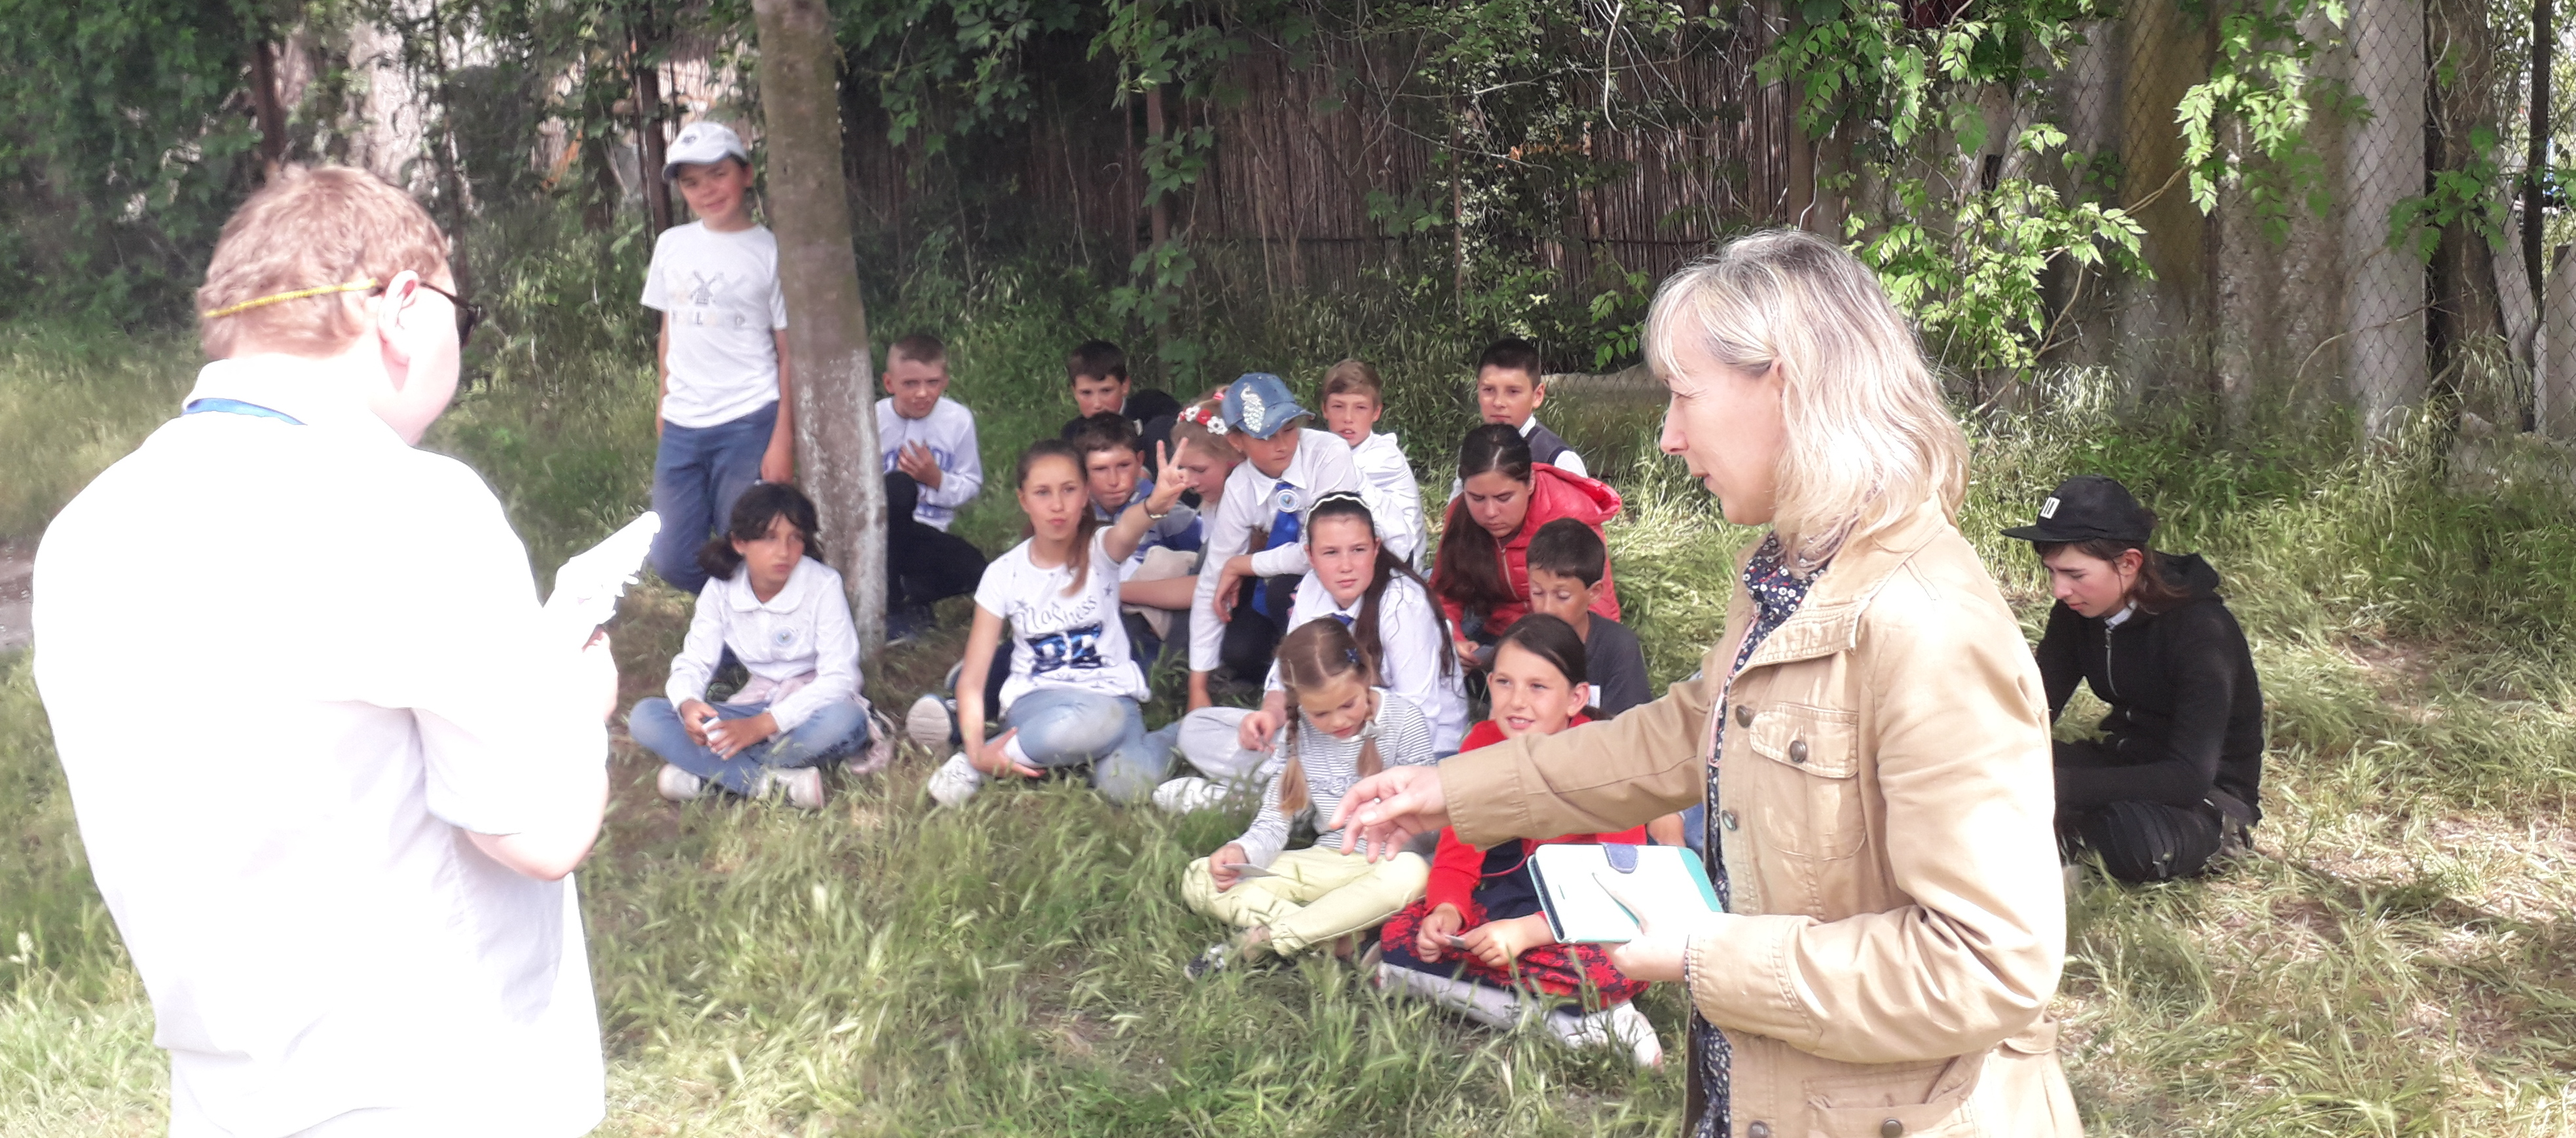 New Active Youth Club for the Danube and Sturgeons Started in Sfantu Gheorghe